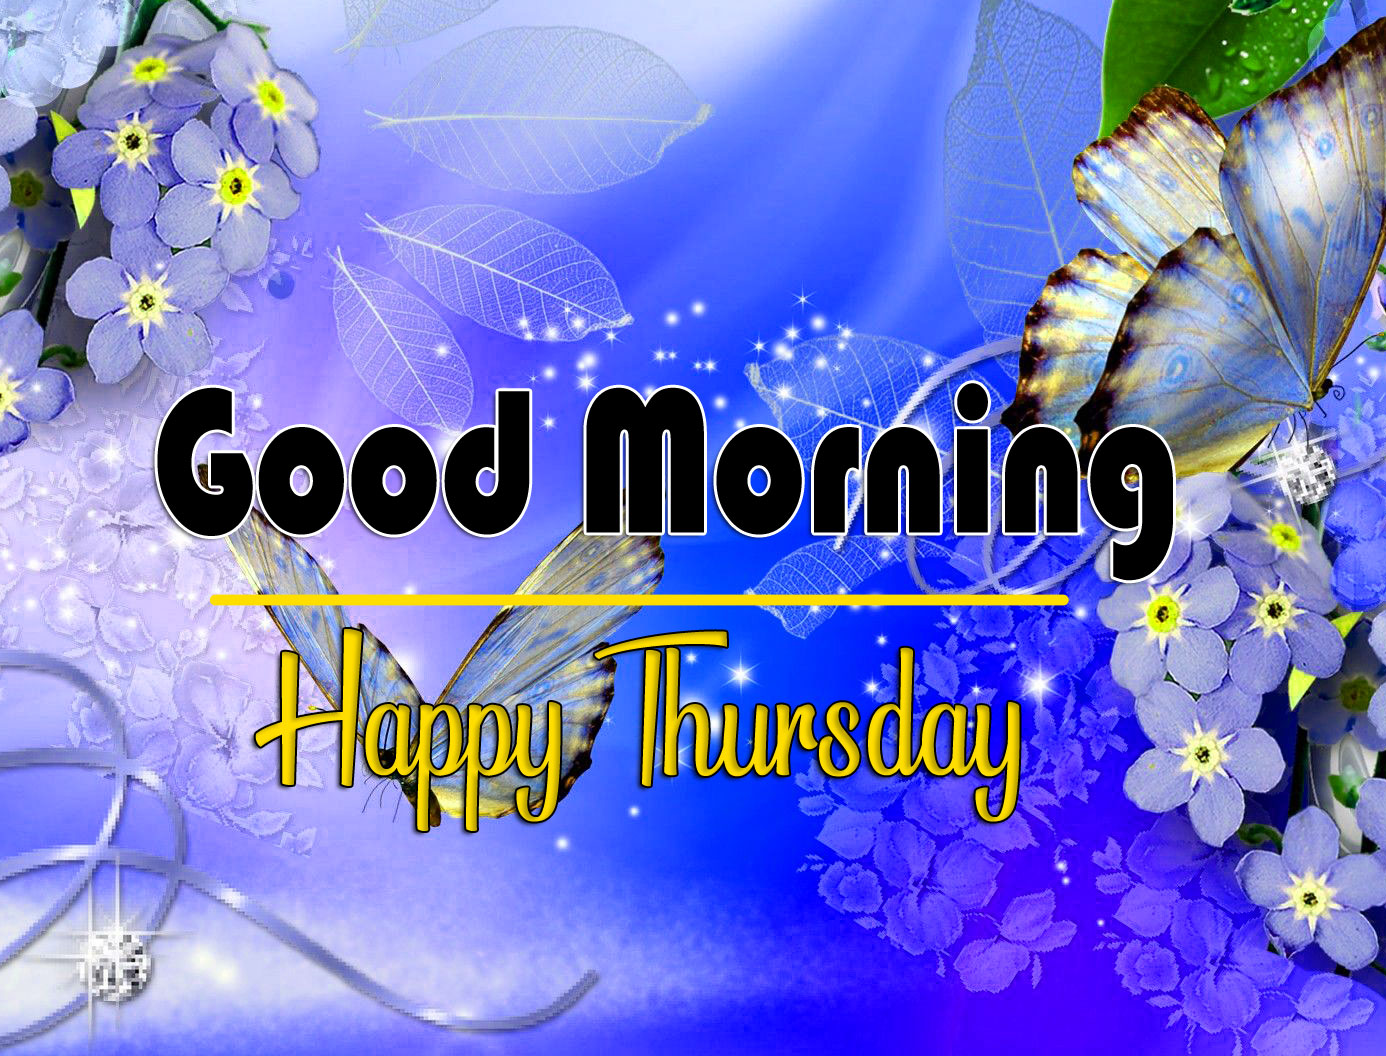 Free HD thursday morning Images 3